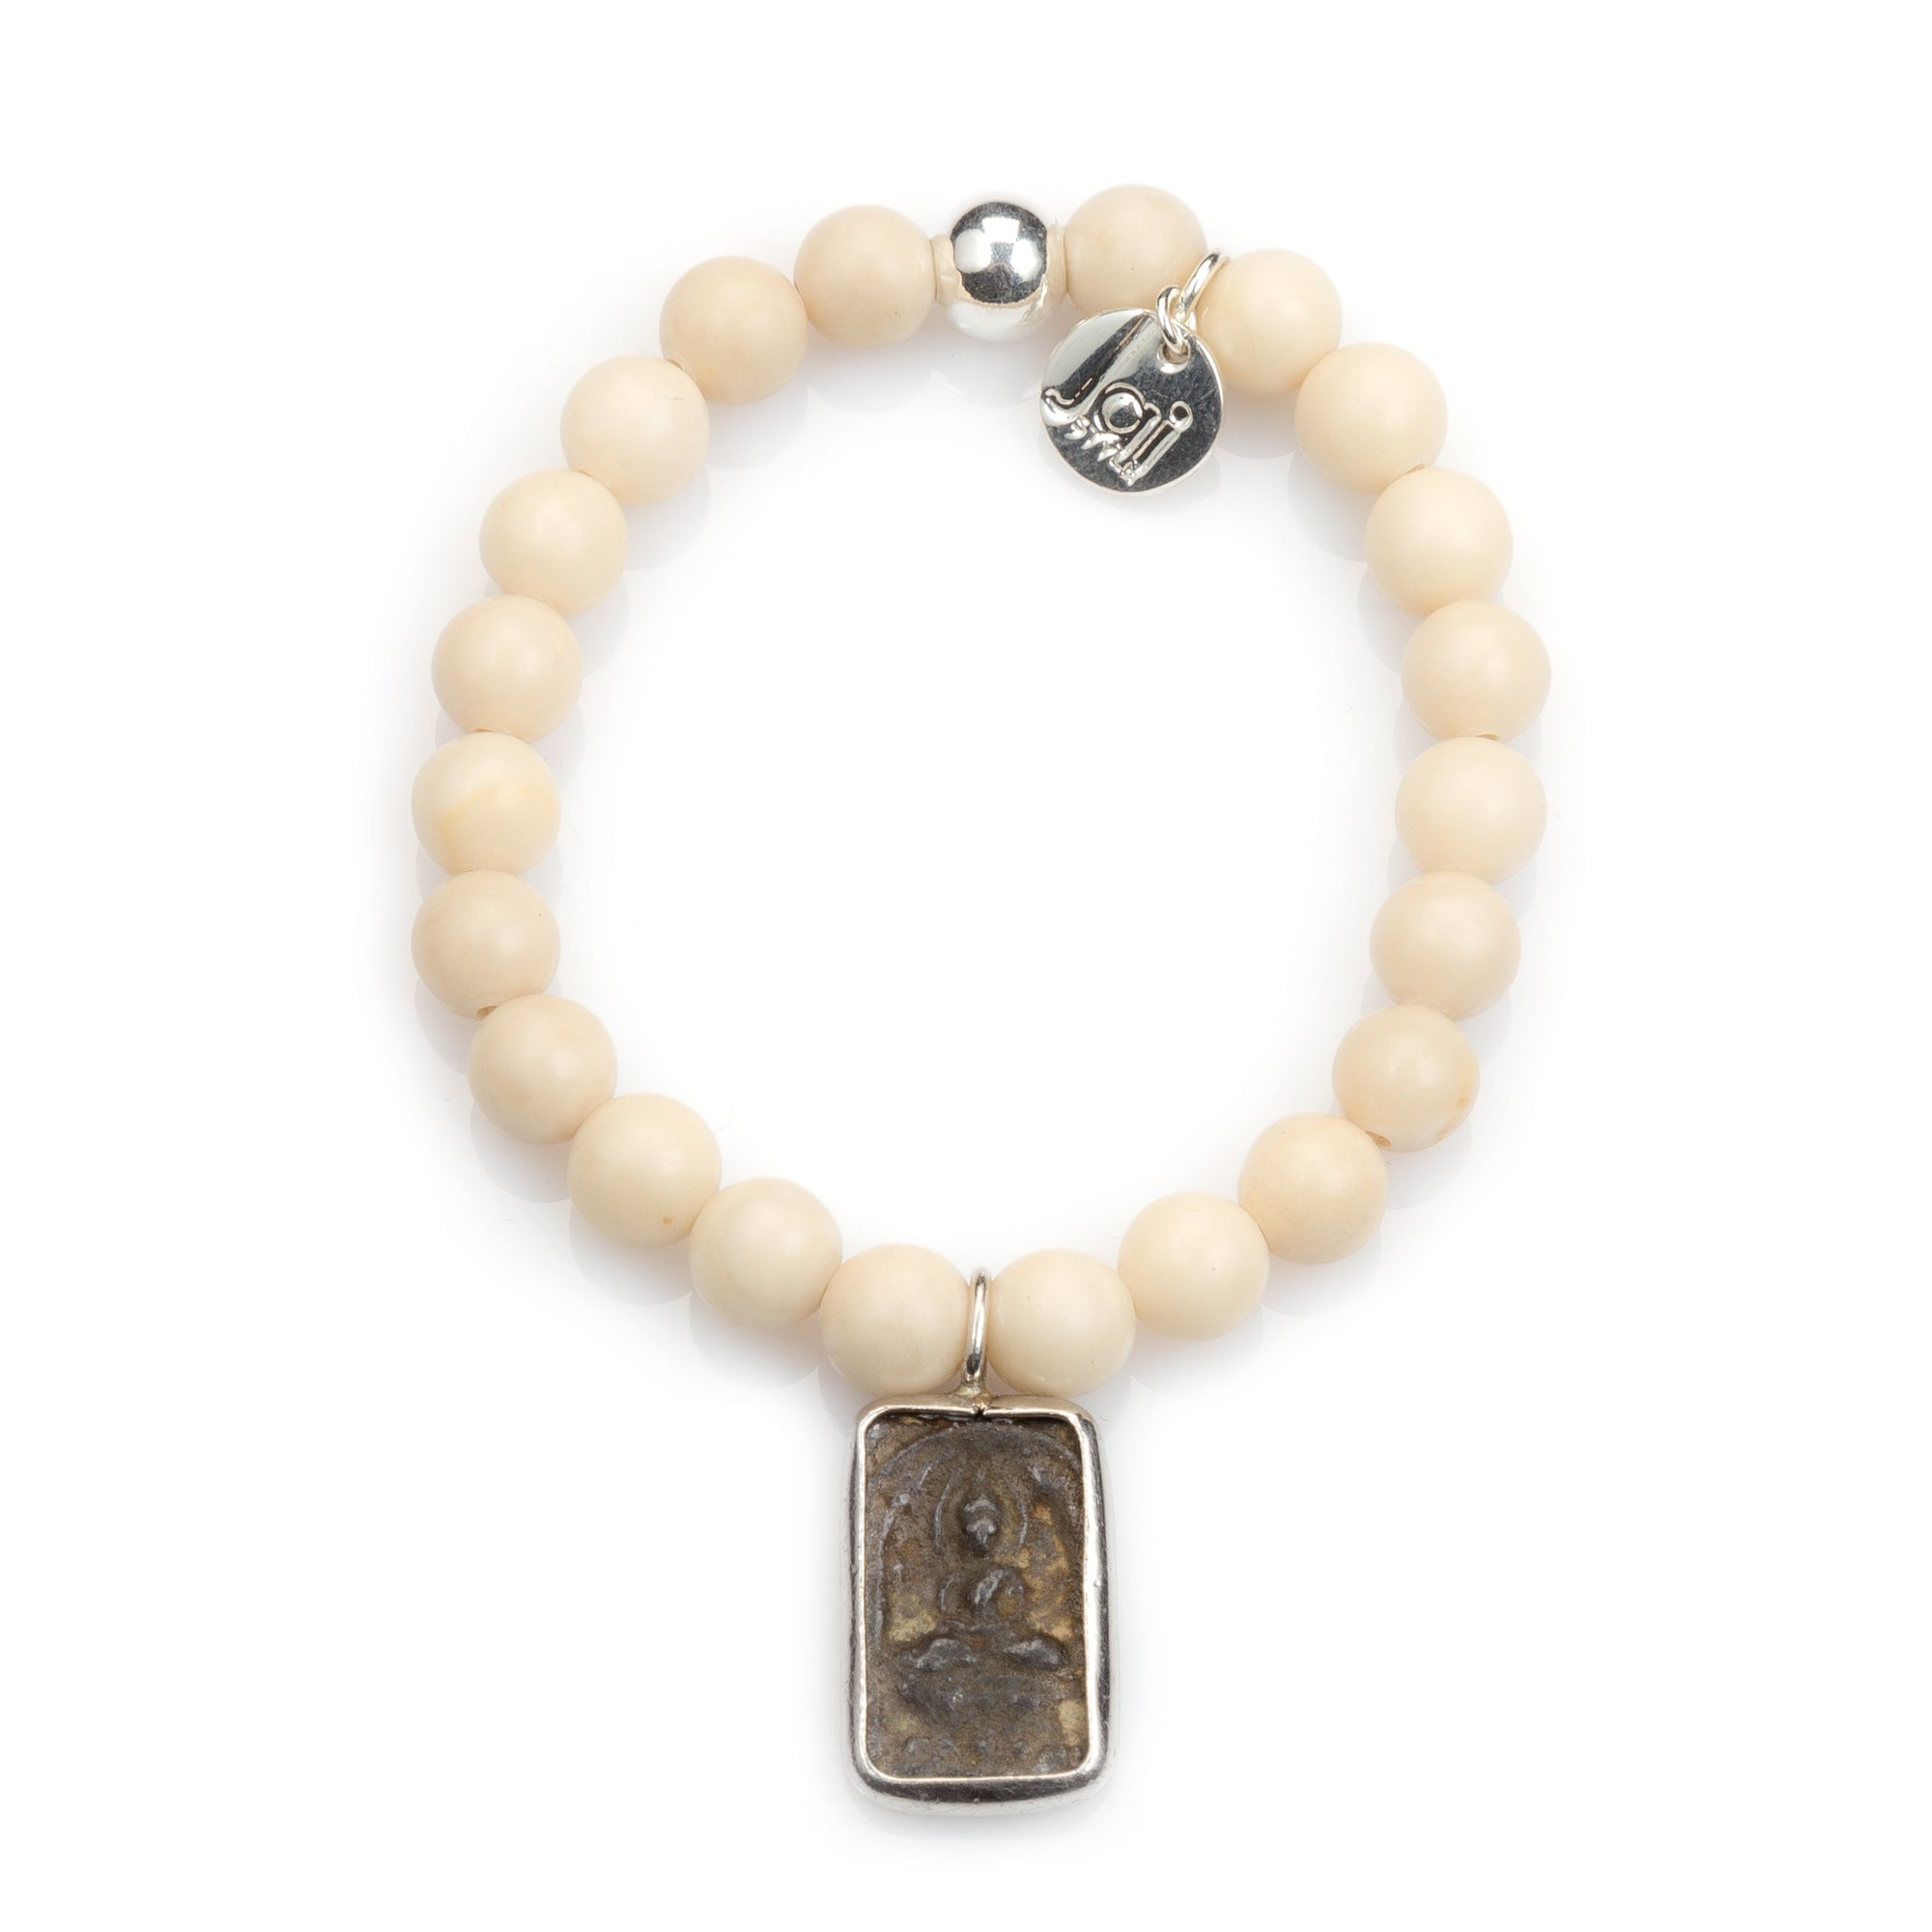 Riverstone Bracelet with Authentic Thai Amulet